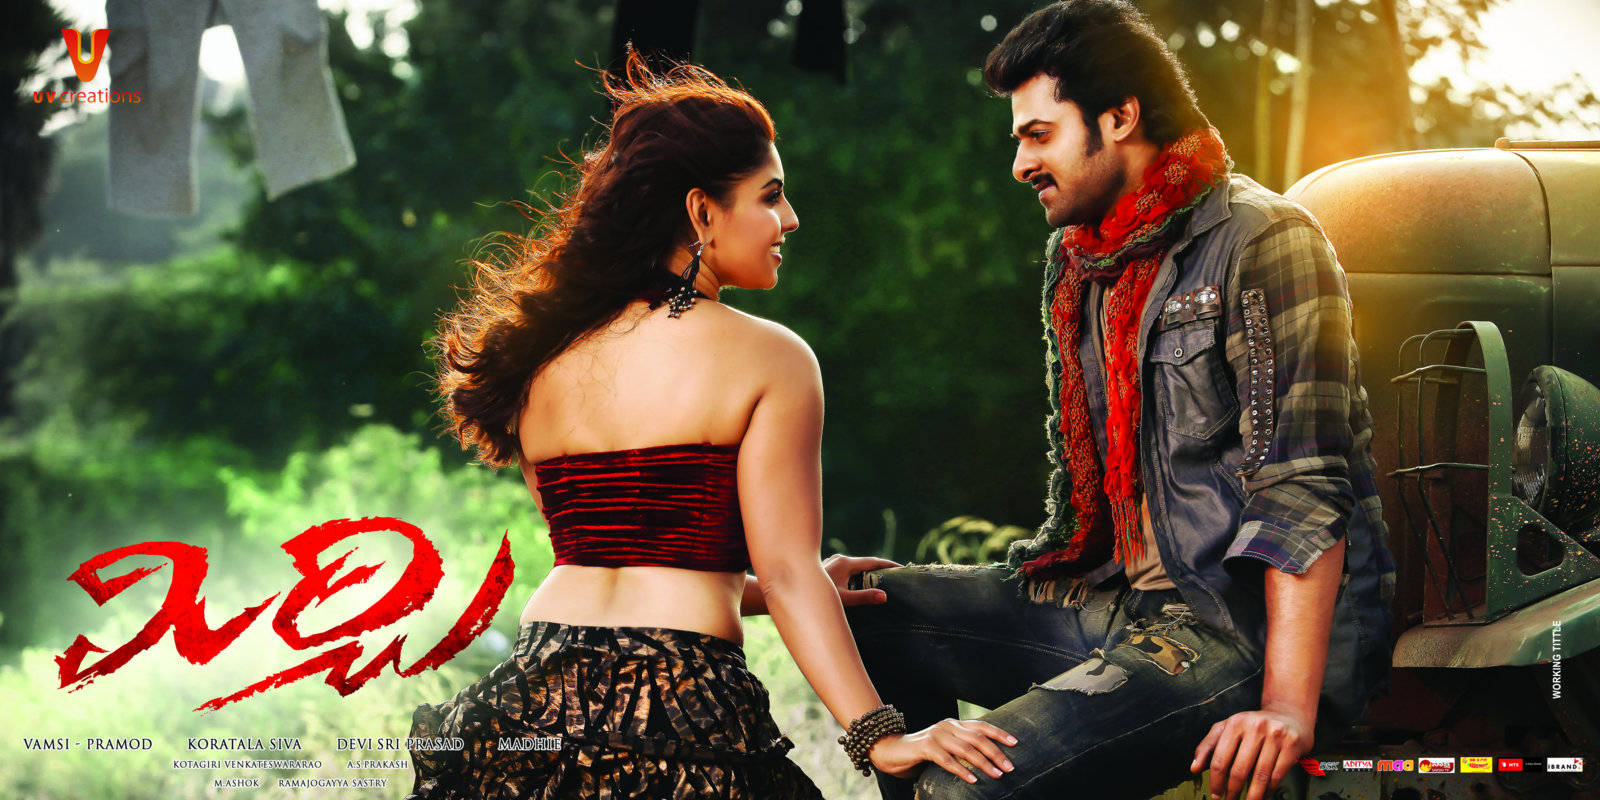 Stylish Prabhas Hq Wallpaper In Rebel: Young Rebel Star Prabhas Die Hard Fans: Mirchi HQ Stills